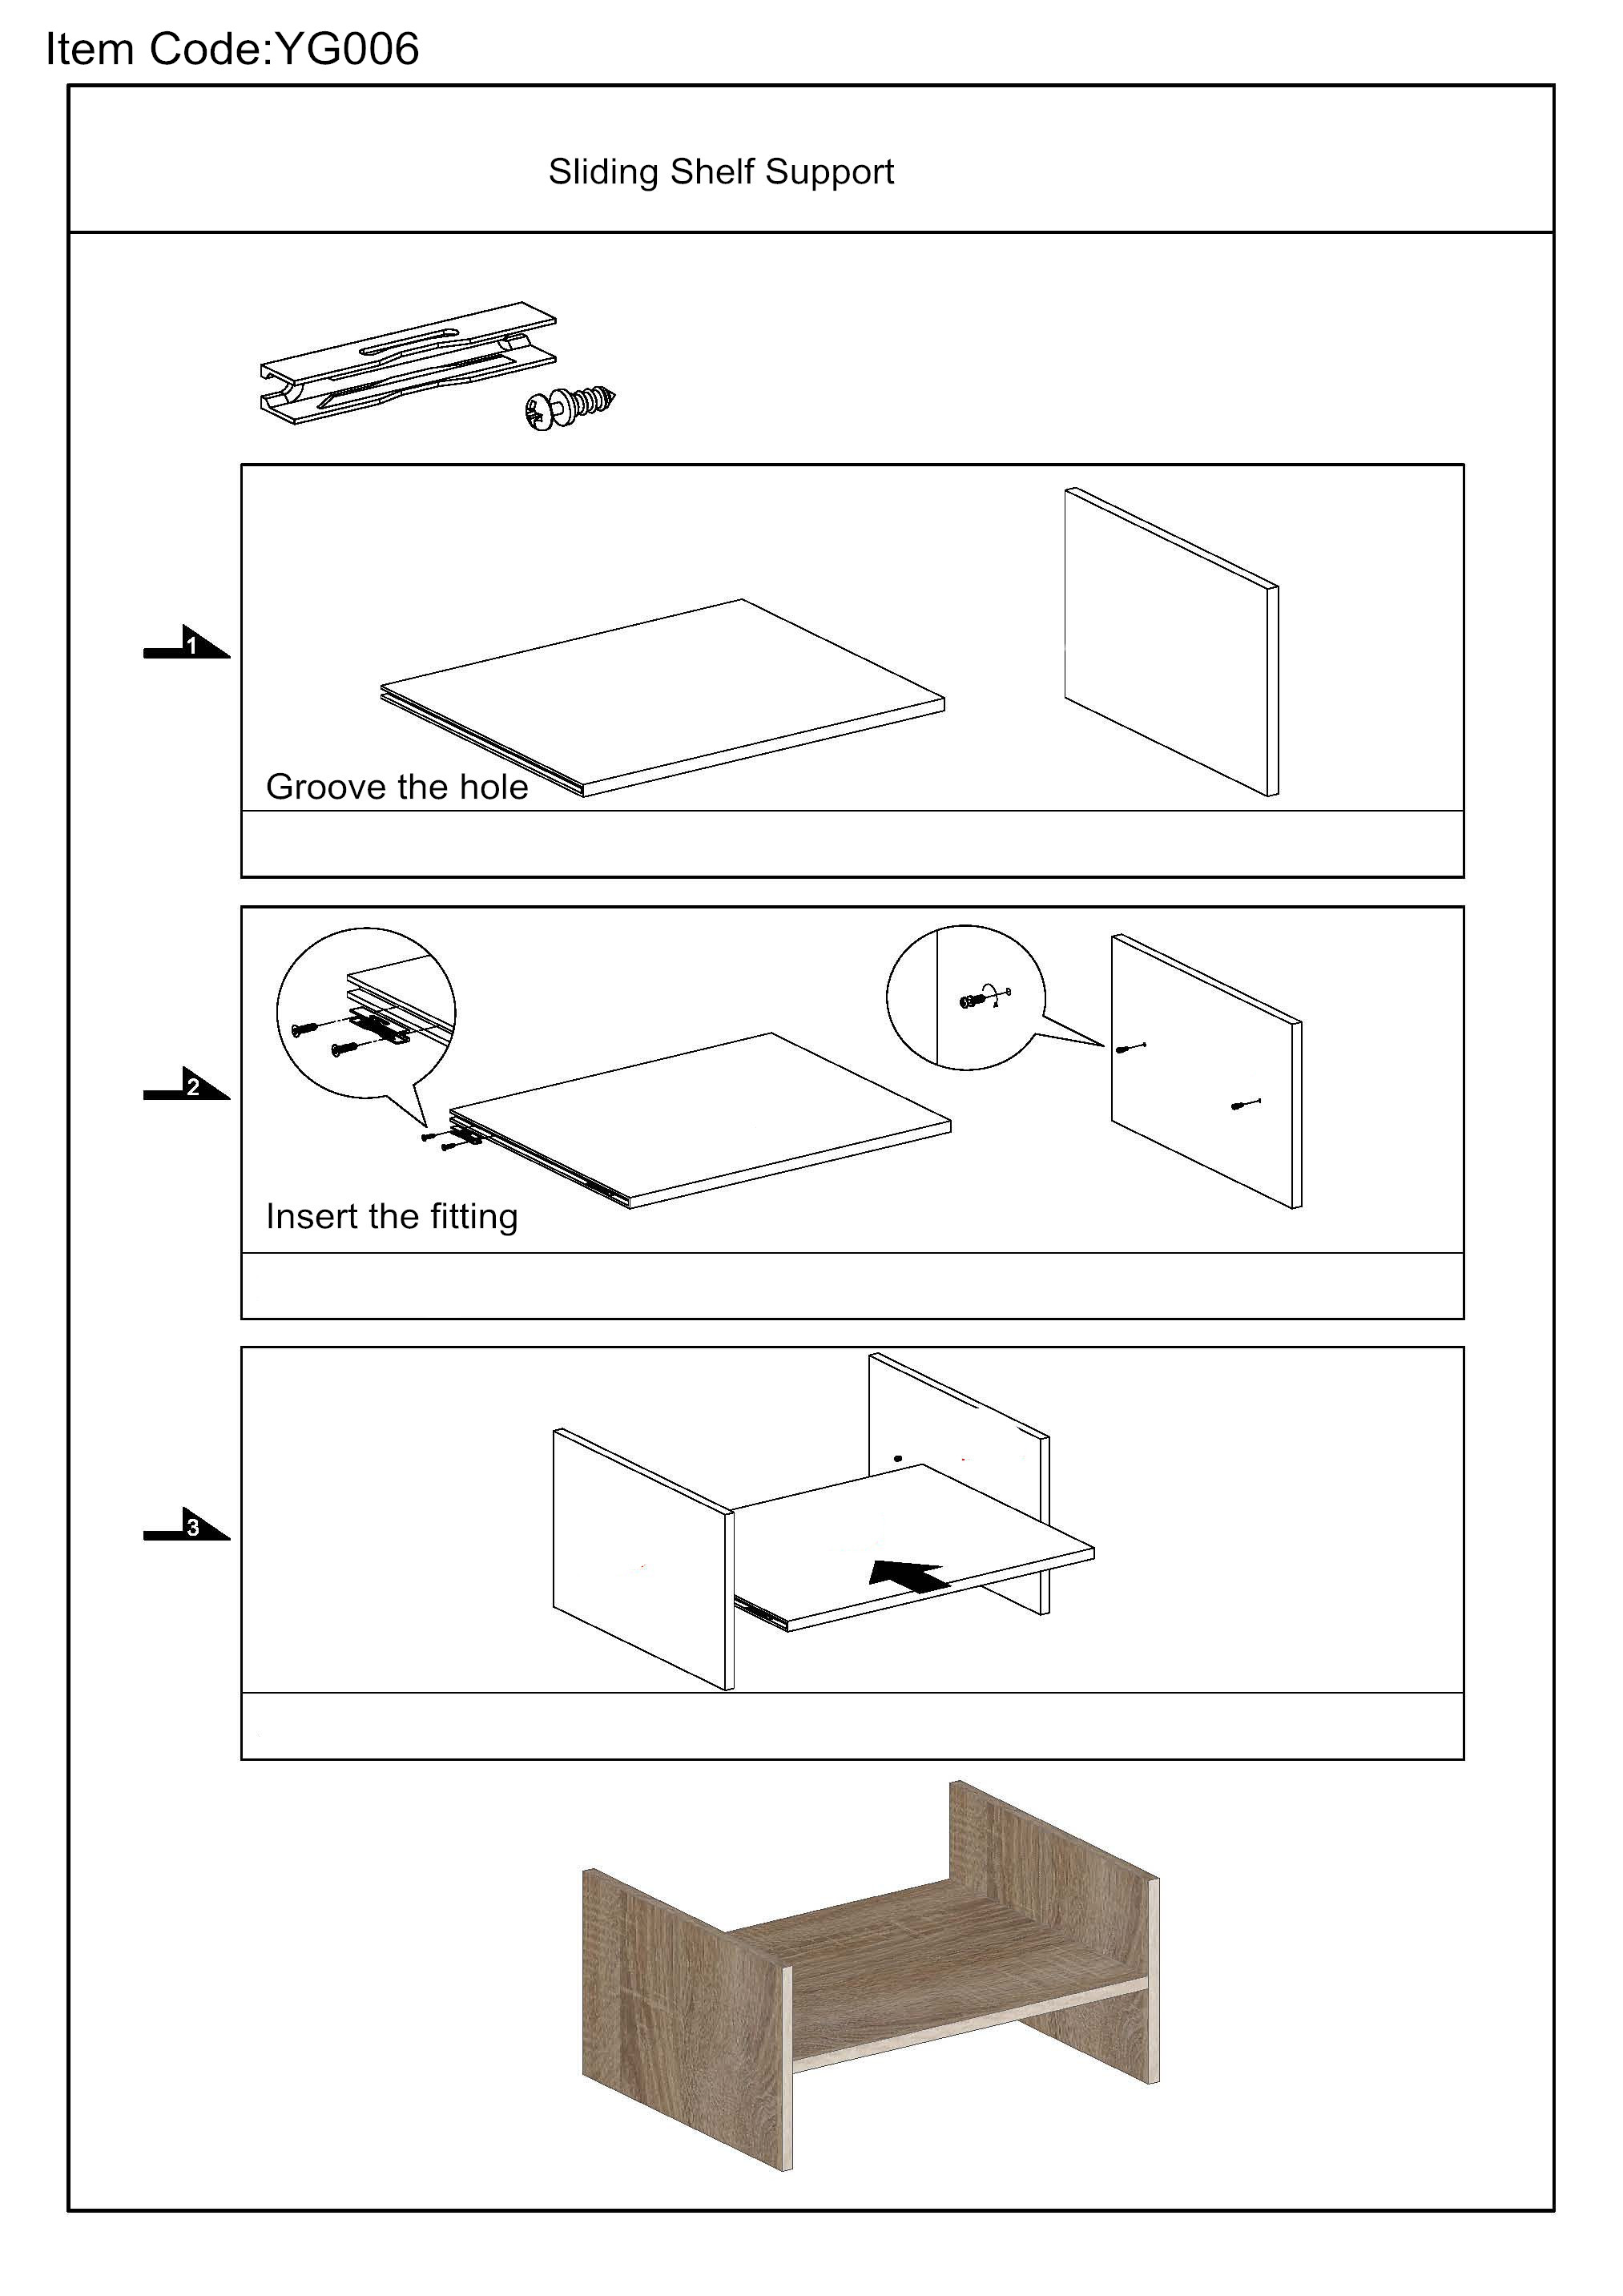 Hiding shelf support